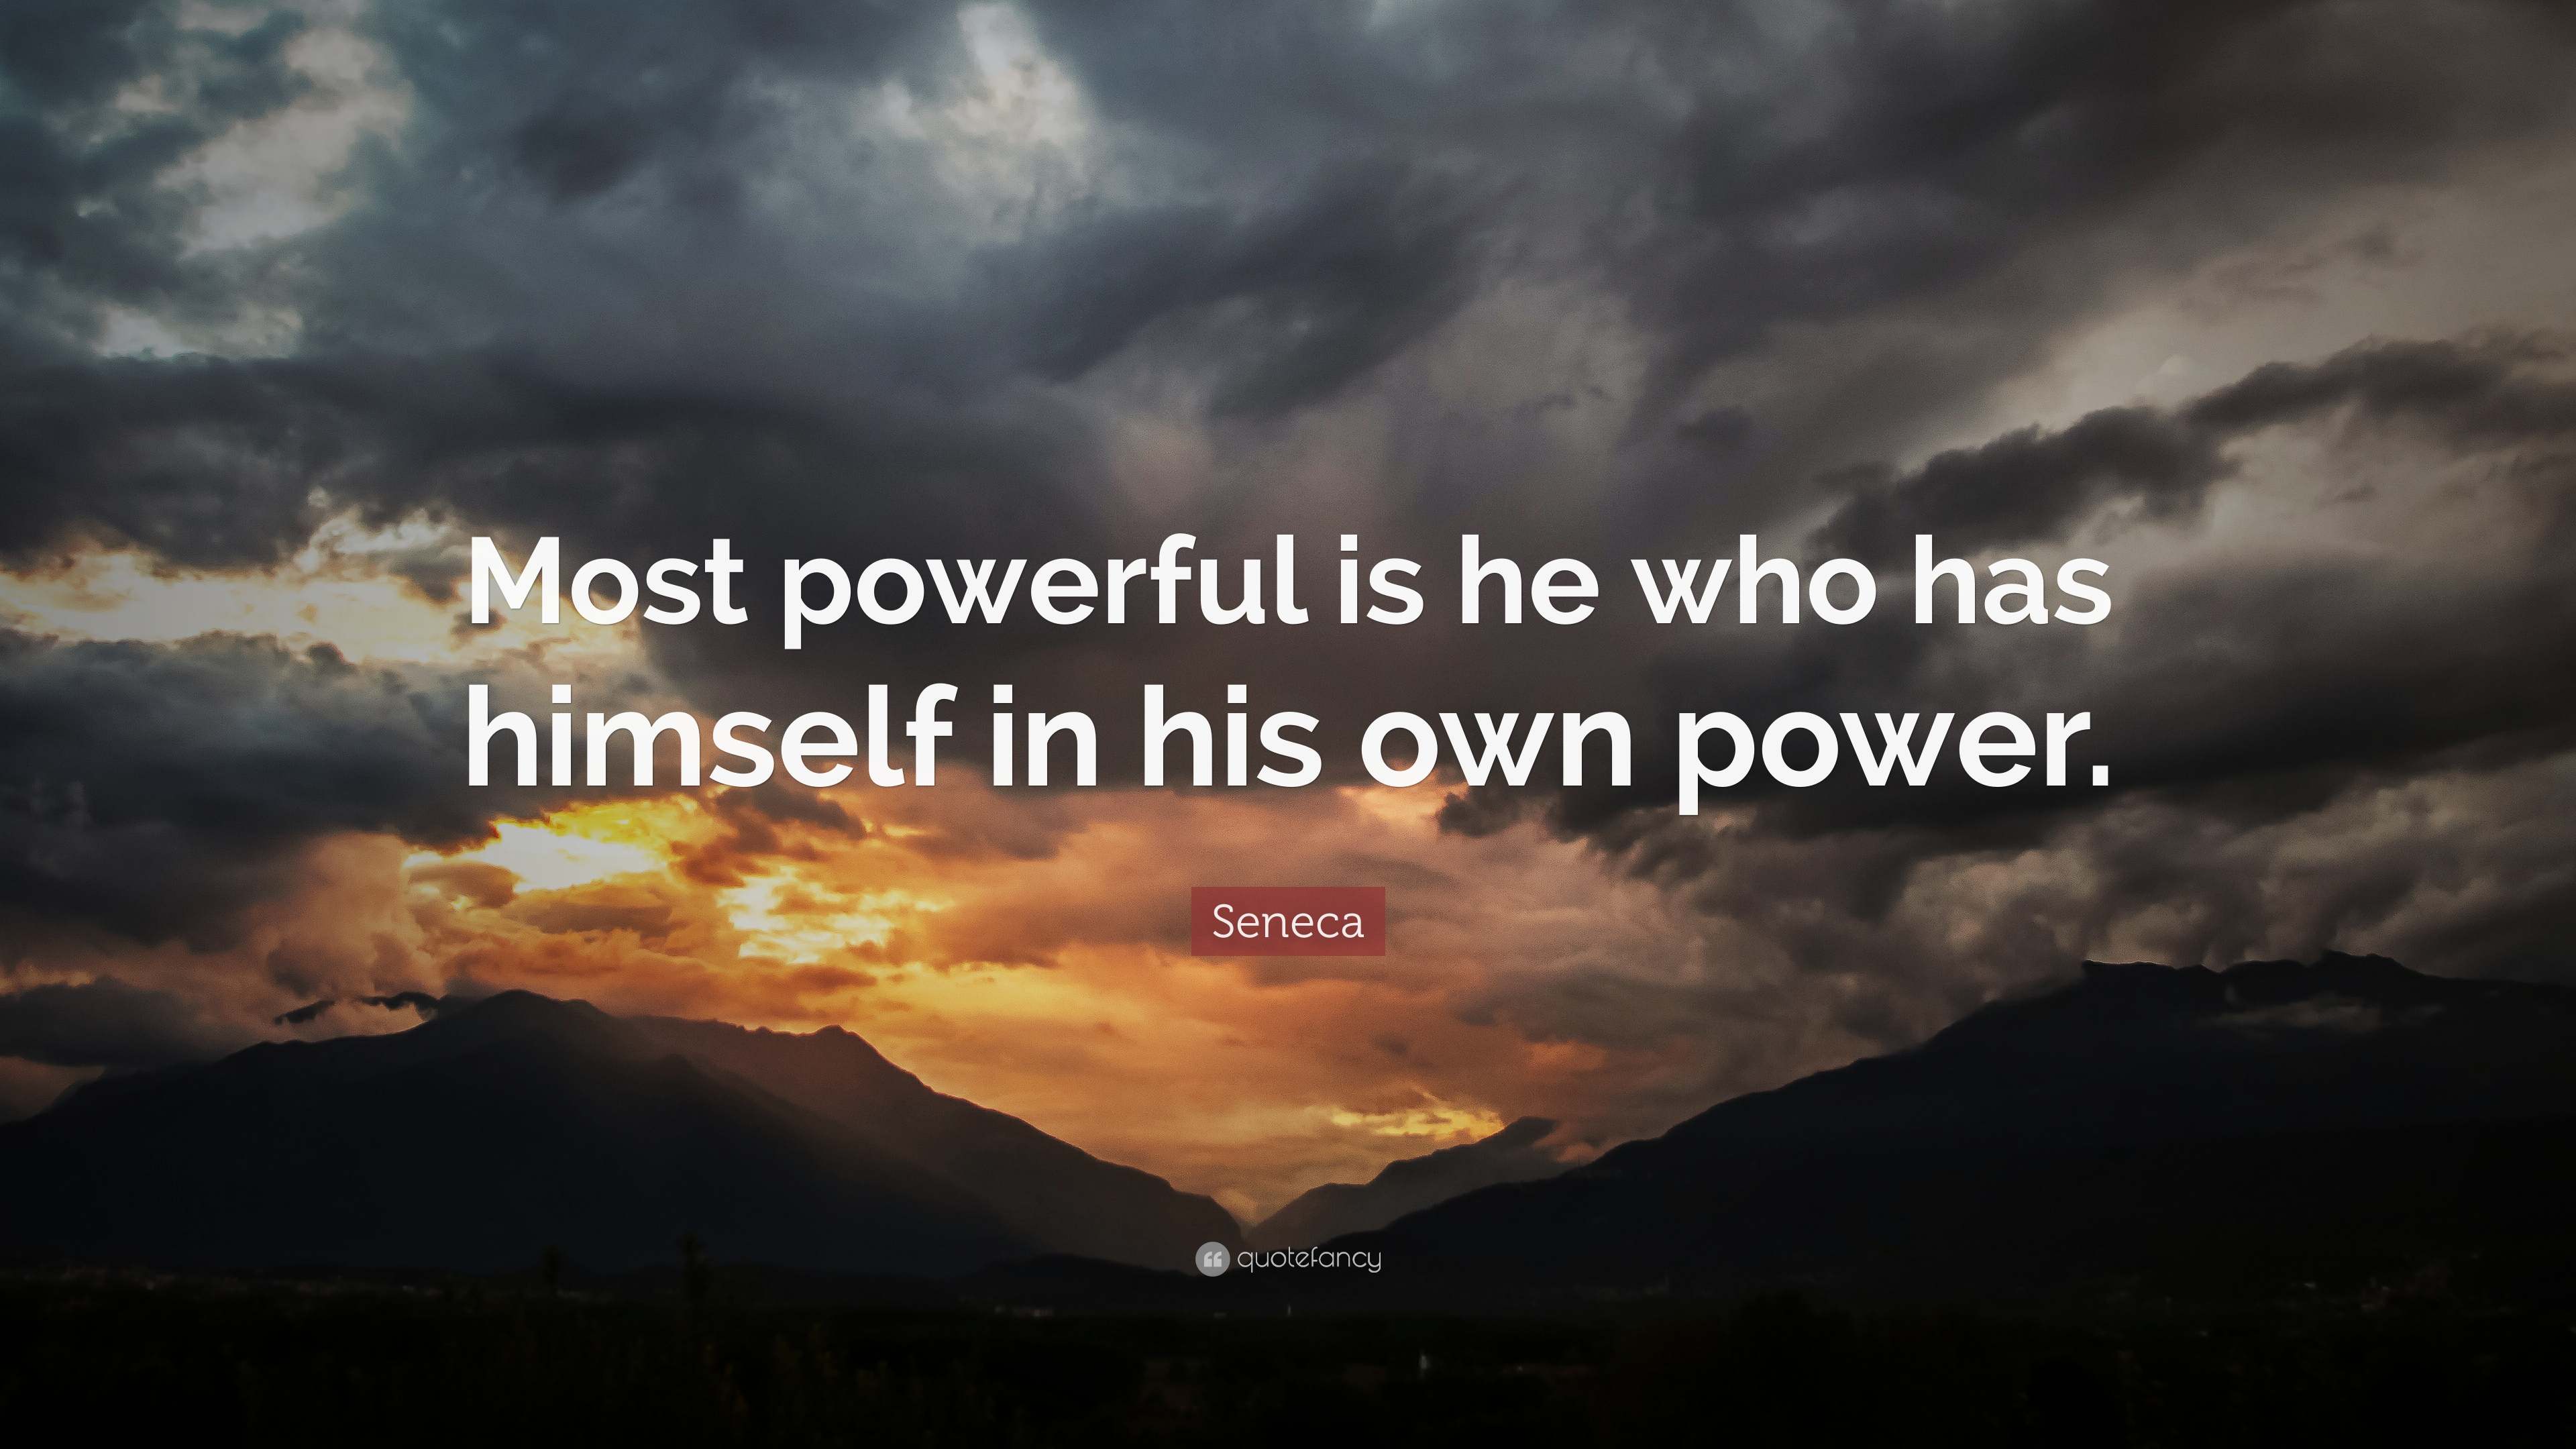 22 Of The Most Powerful Quotes Of Our Time: Seneca Quotes (55 Wallpapers)